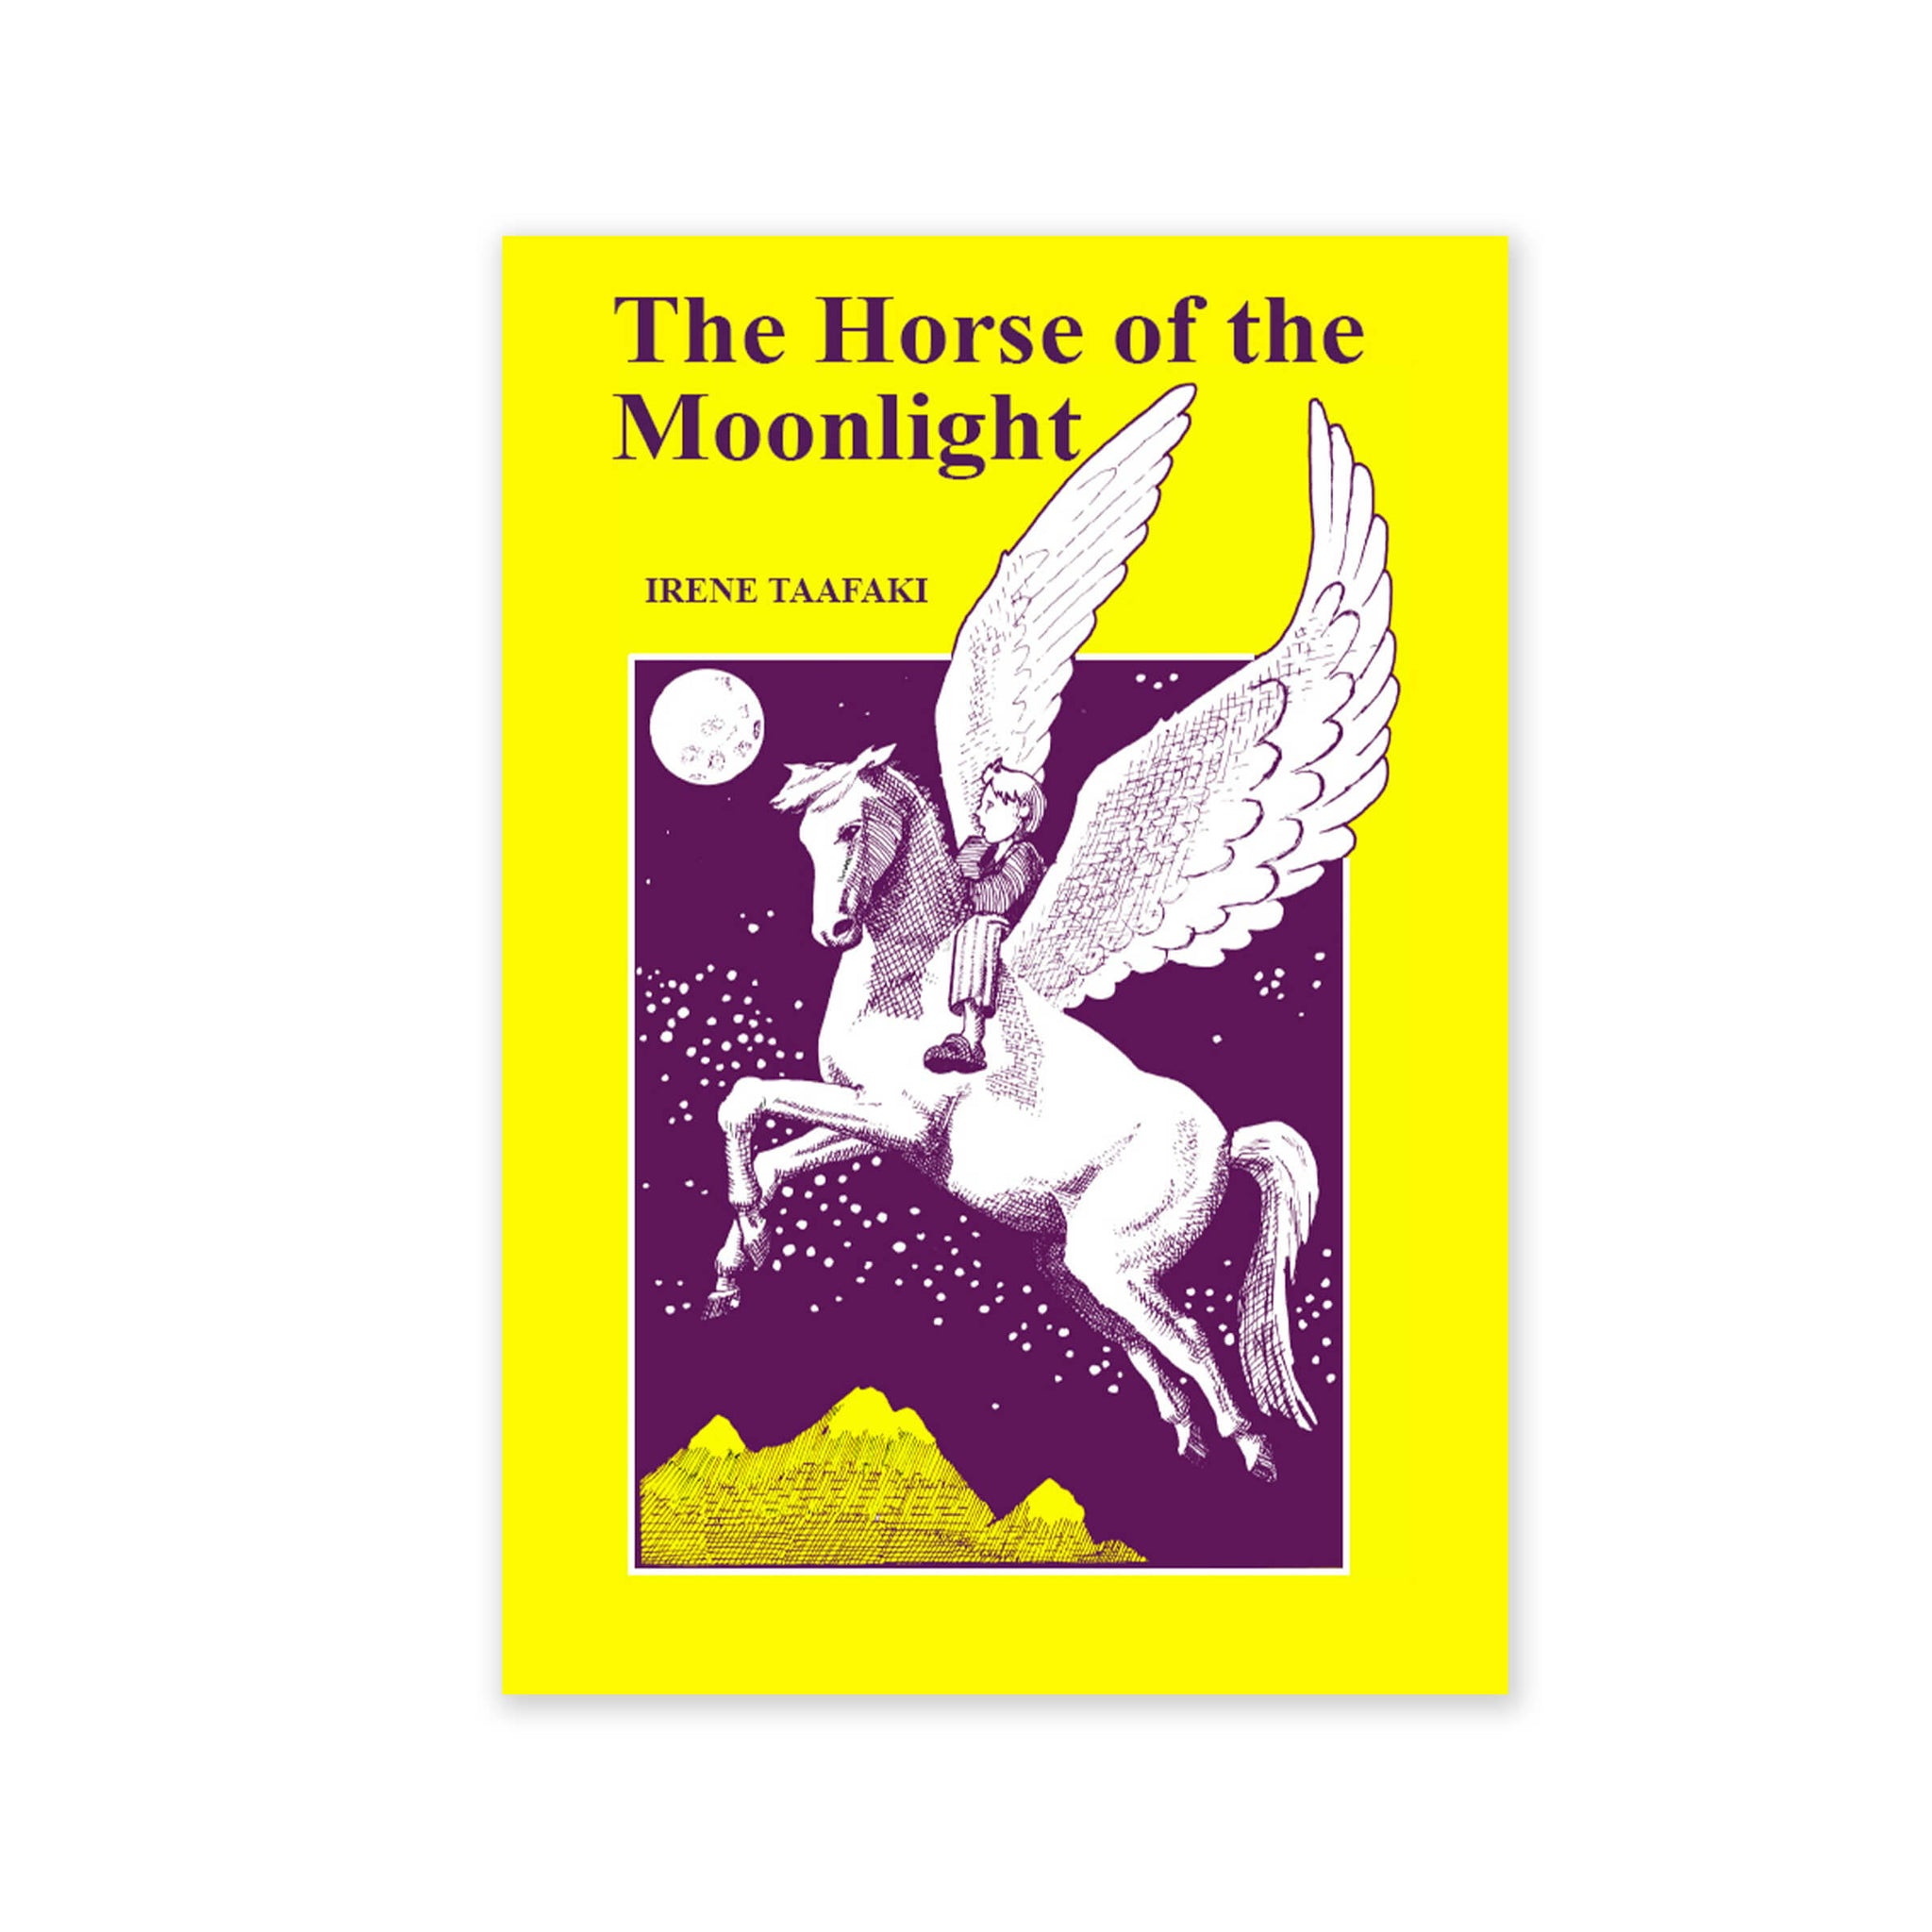 Horse of the Moonlight - A Story for Children